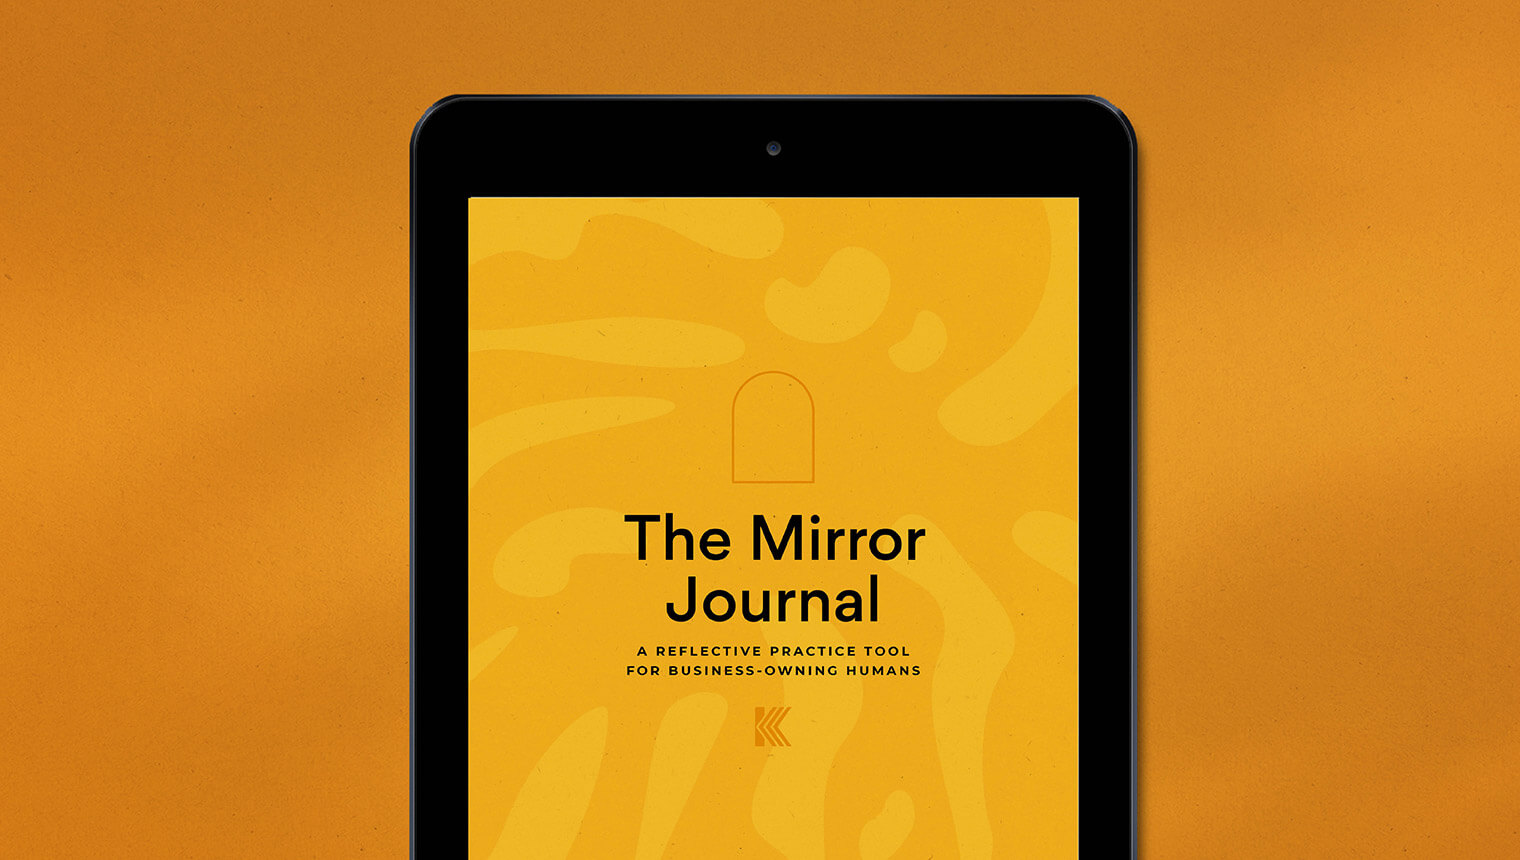 View of ipad with front cover of The Mirror Journal by Kirsty Fanton. The cover is bright yellow with a subtle leaf element